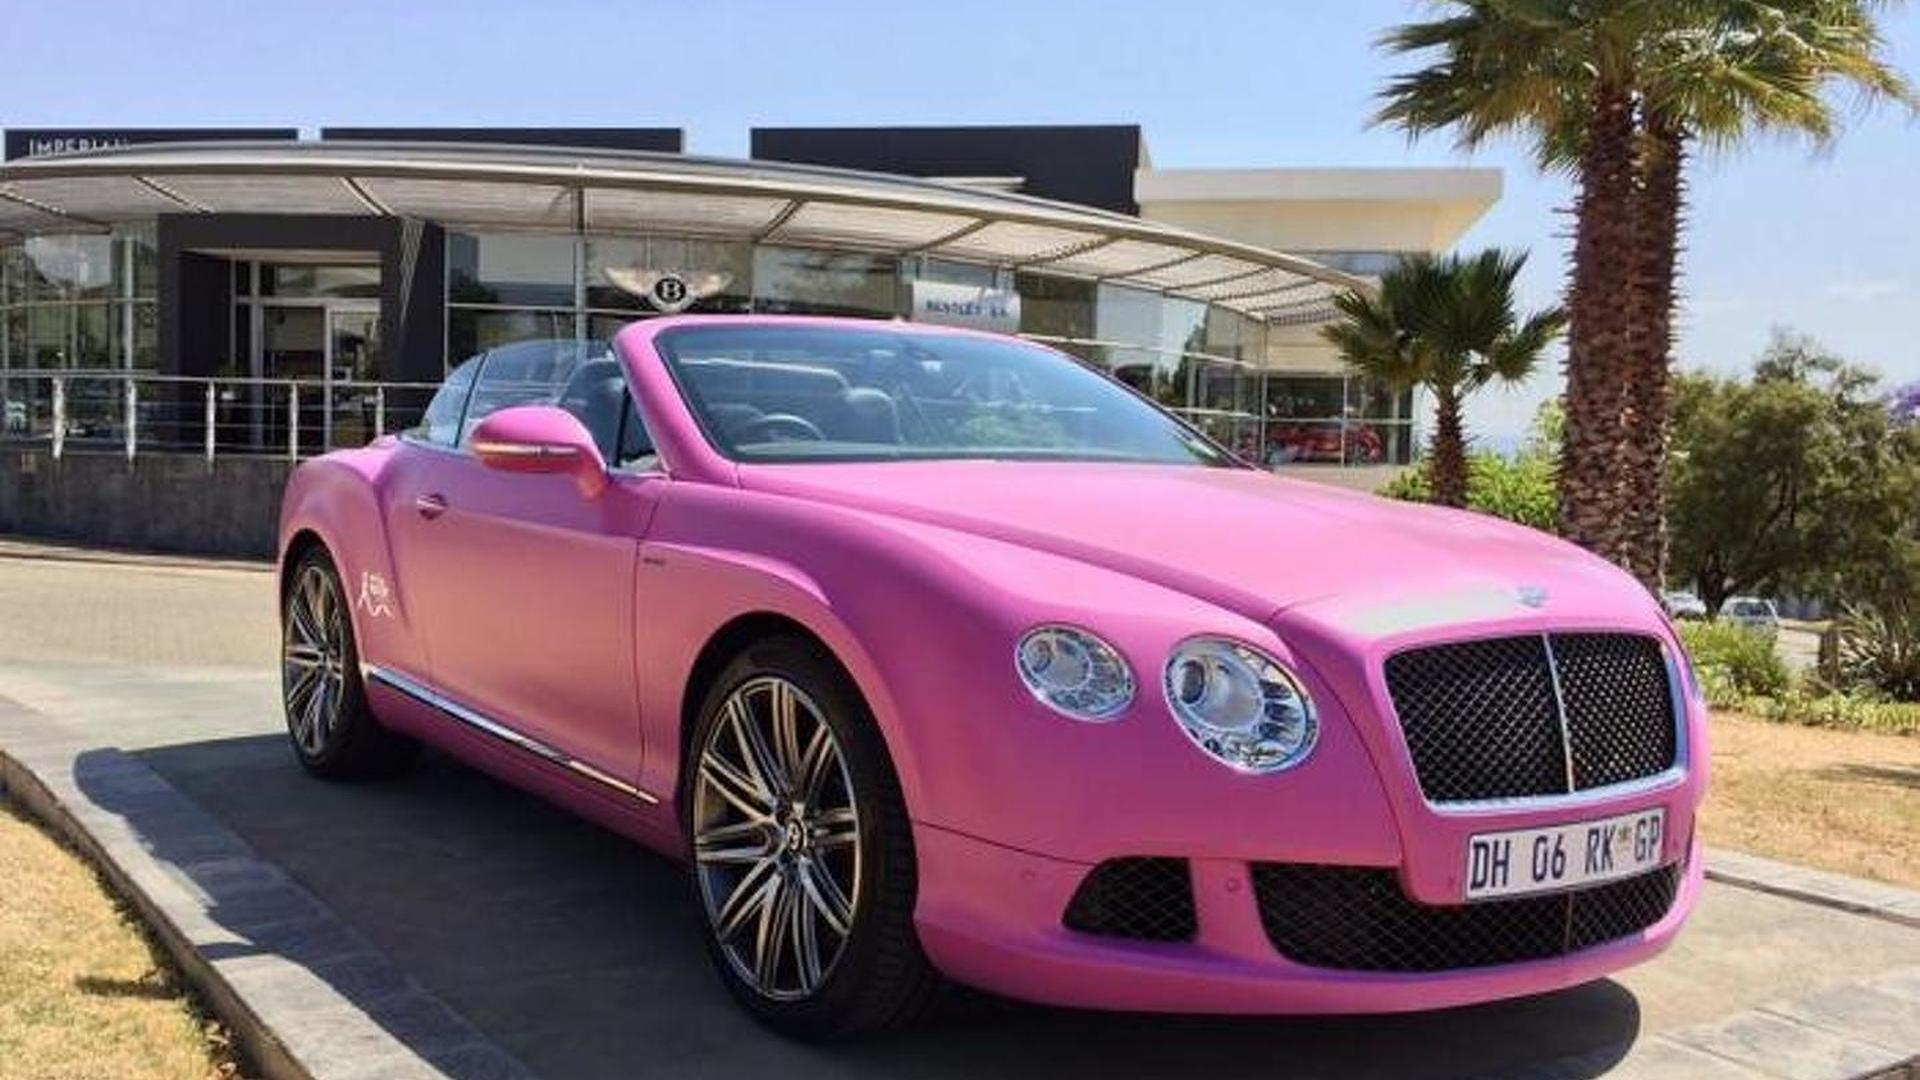 Гламурный розовый кабриолет Bentley Continental